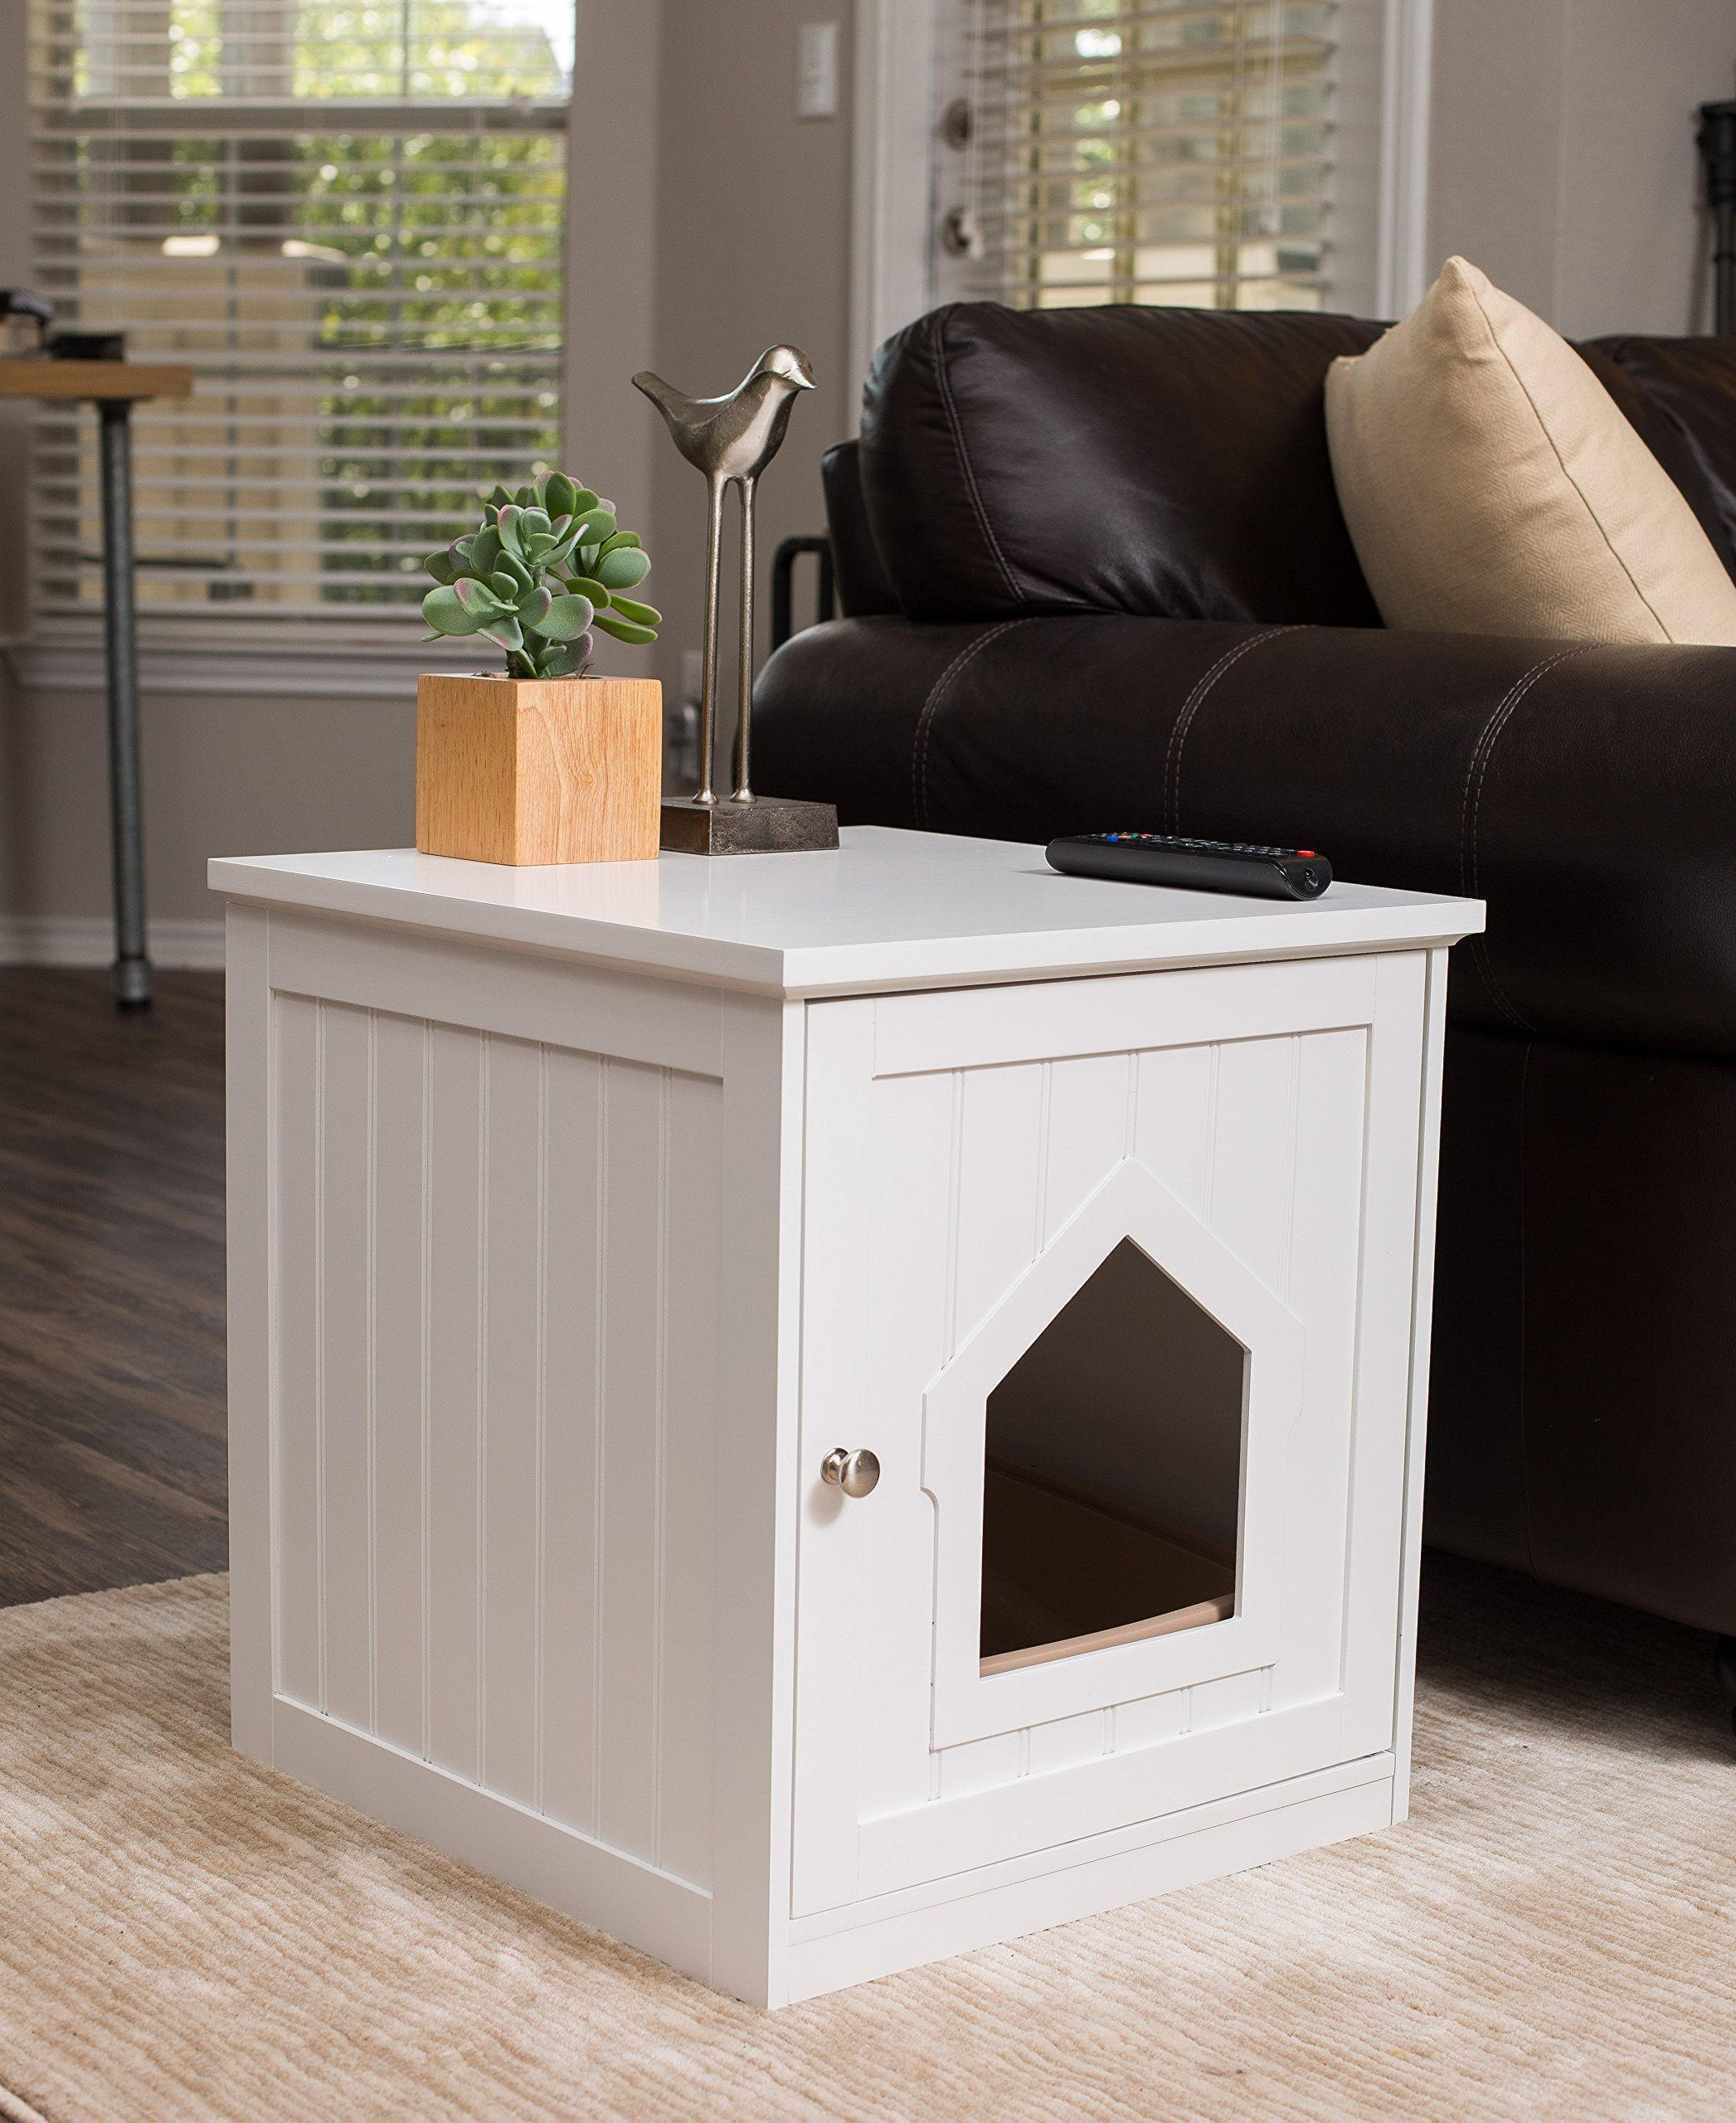 Best Decorative Cat House and Side Table Cat